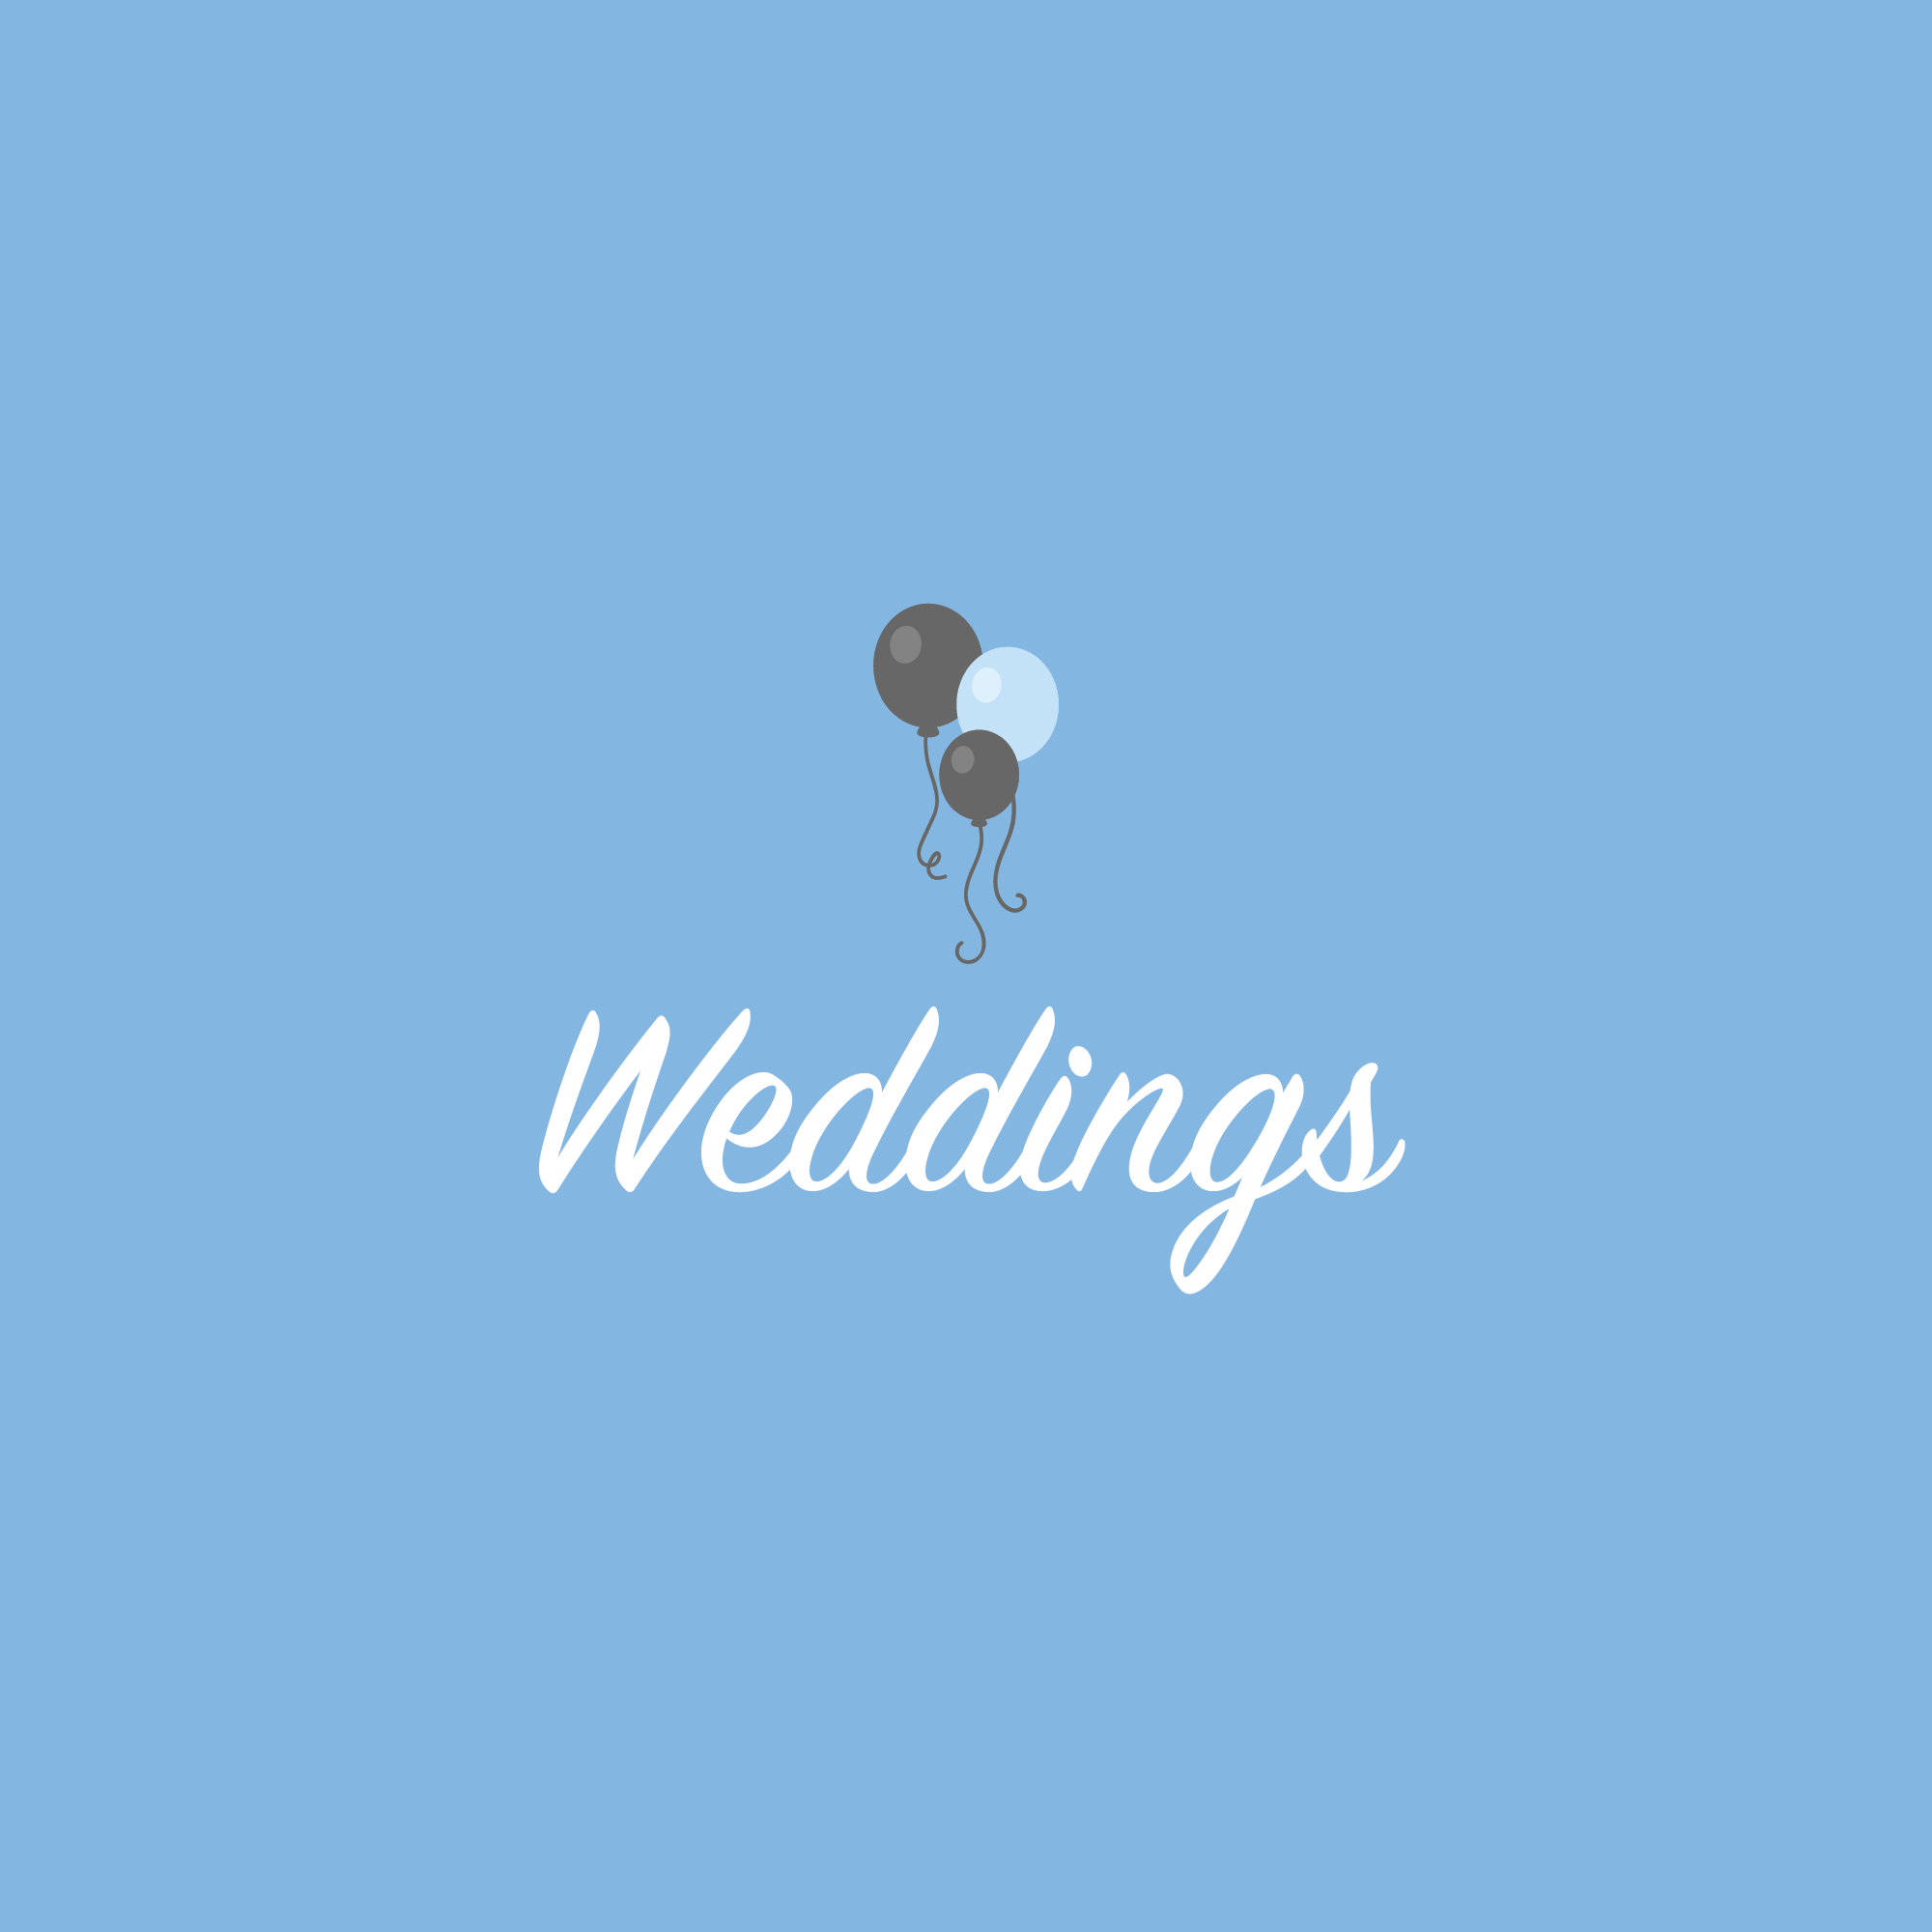 Instagram Story Cover - Weddings Image